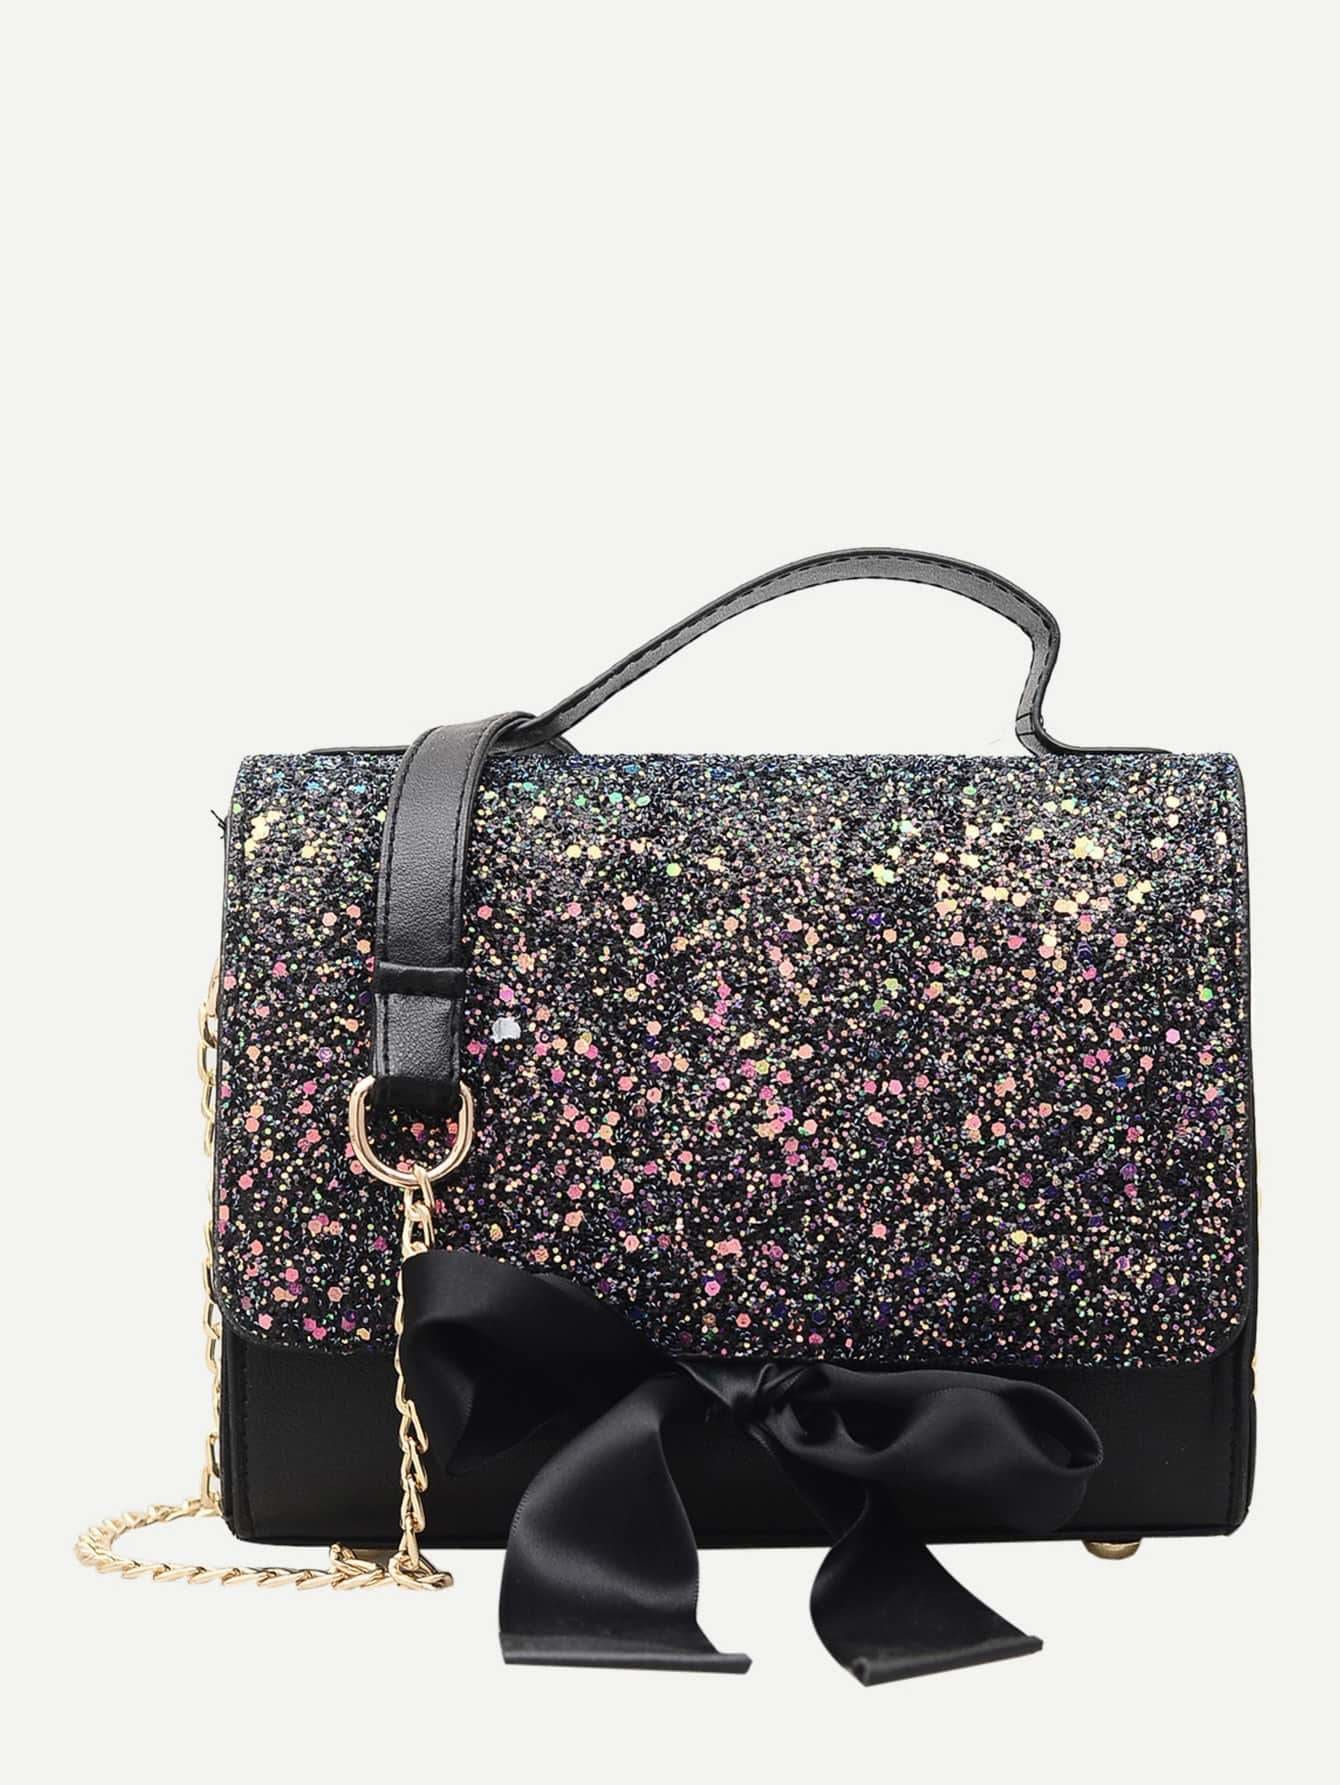 Bow Tie Glitter Chain Bag - Womens Bag